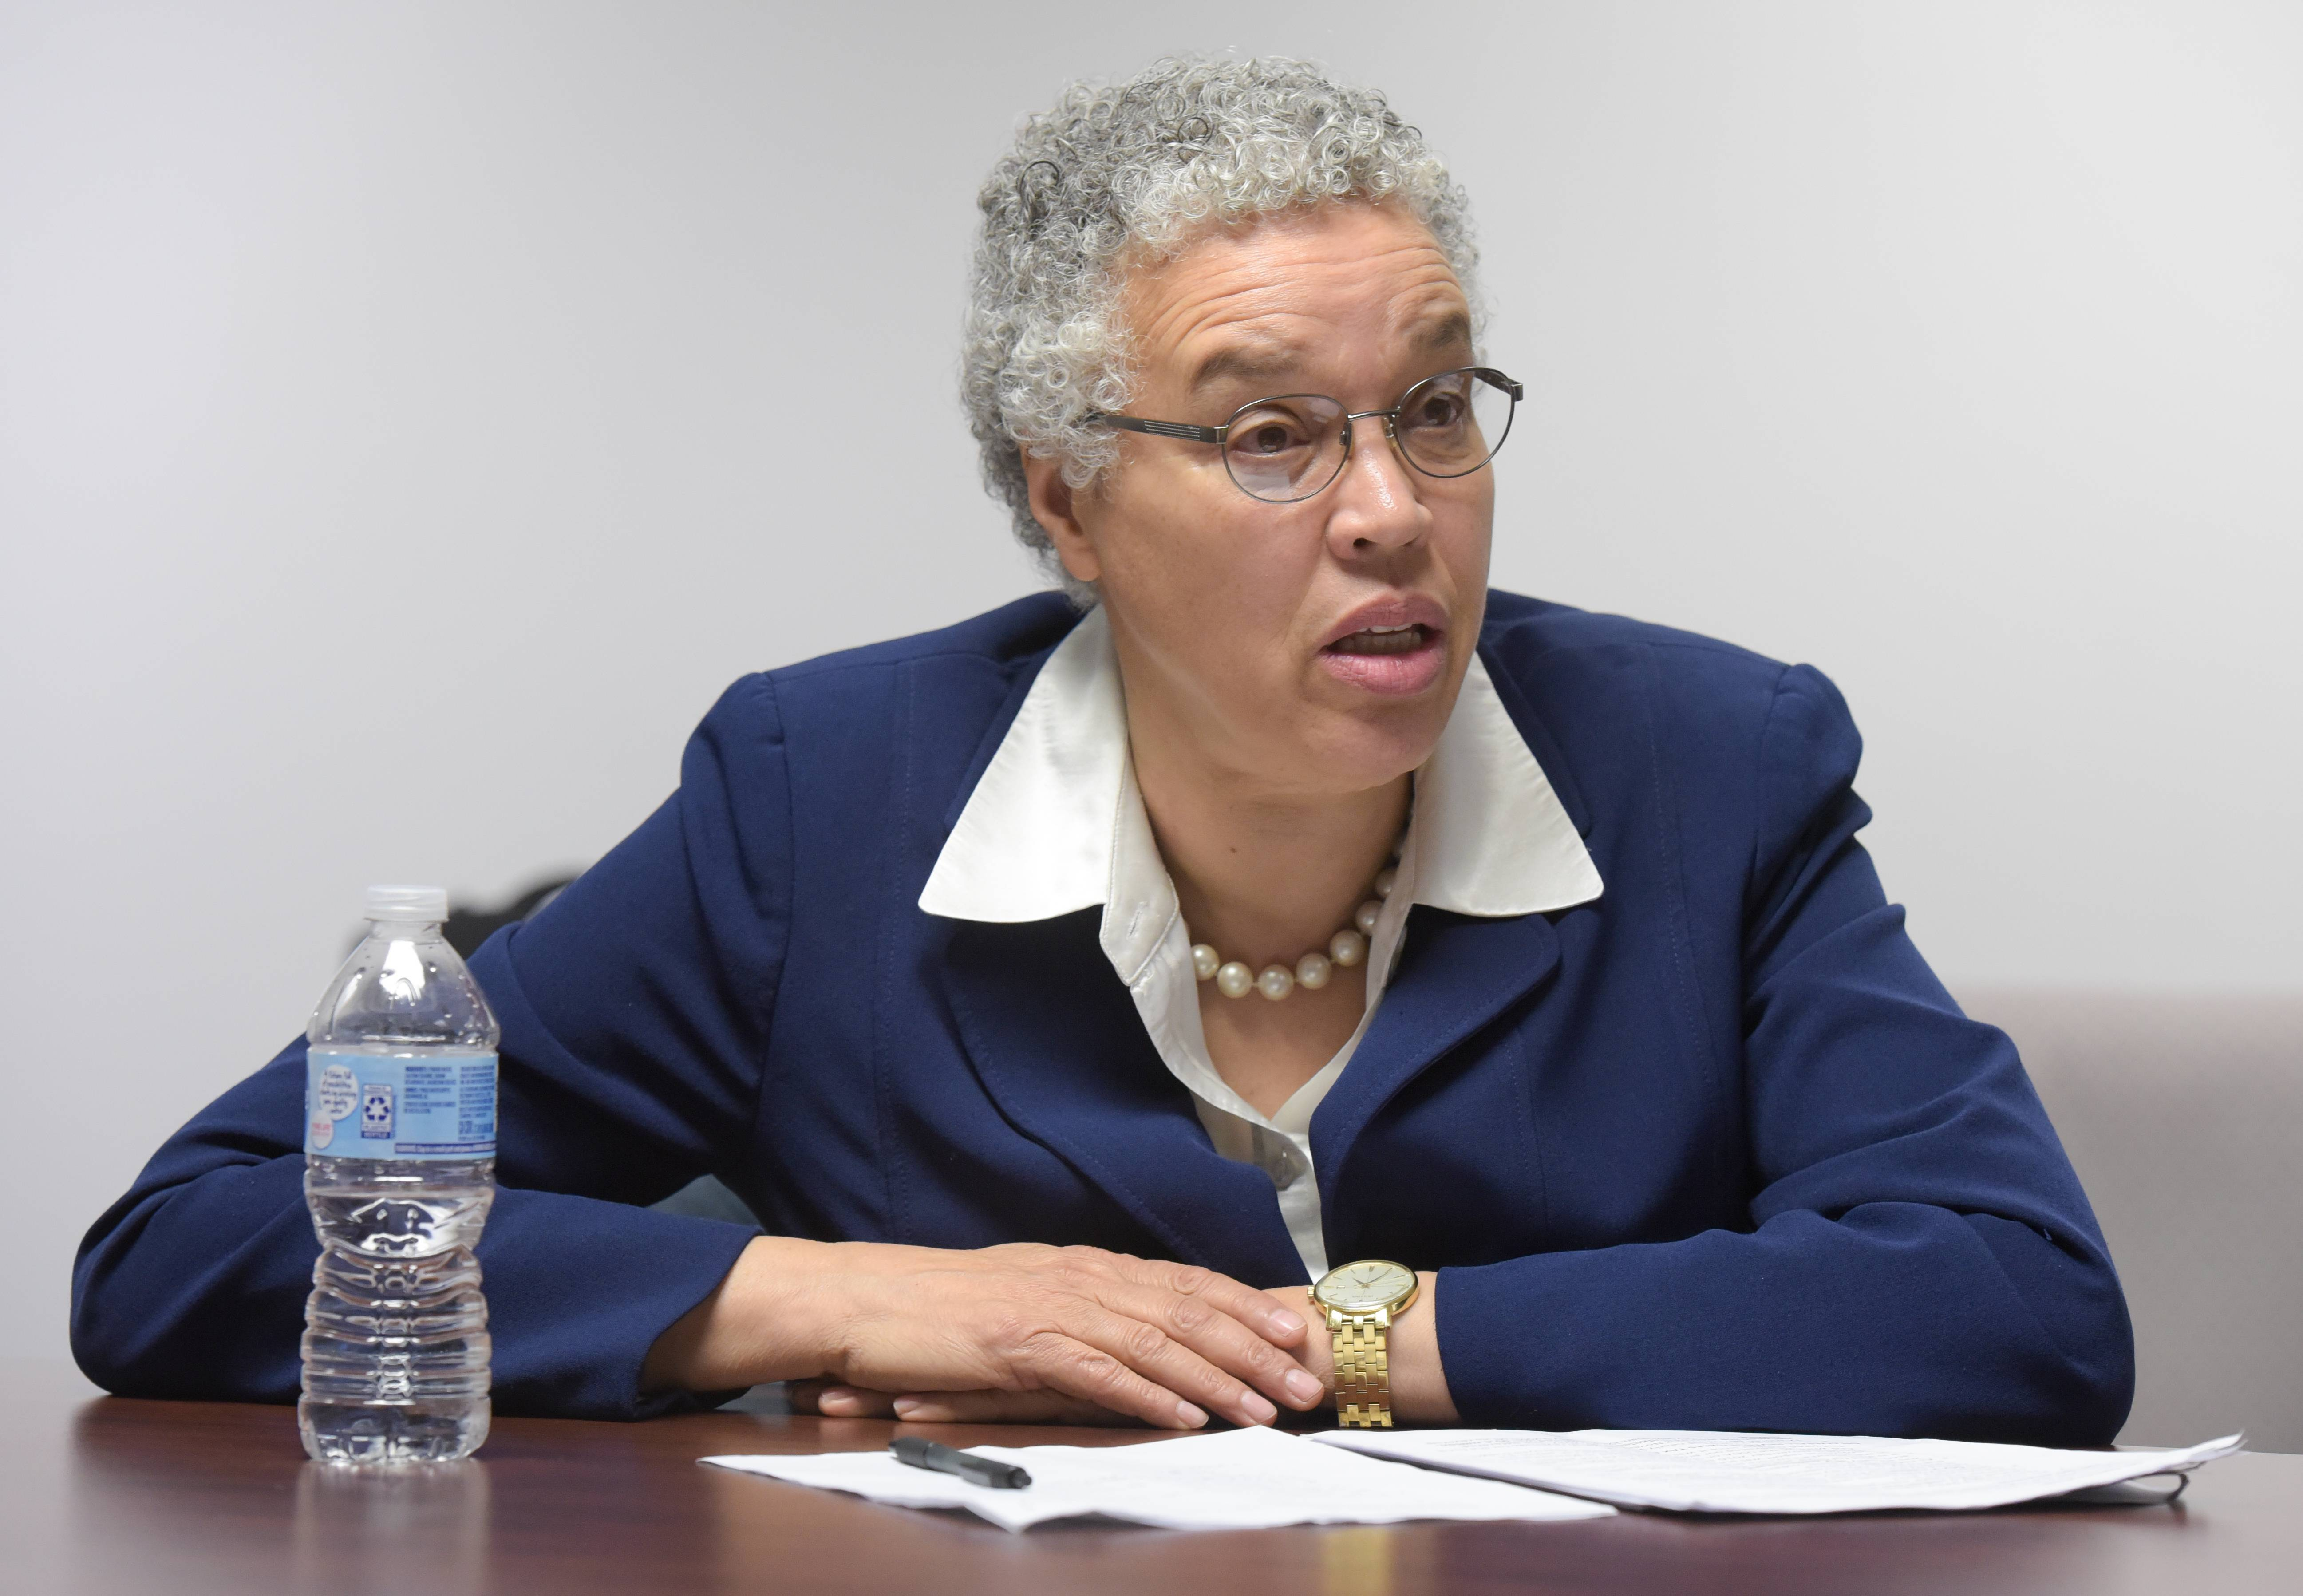 Cook County Board President Toni Preckwinkle, here pictured speaking to the Daily Herald editorial board in February, introduced a new county budget that includes no new taxes.